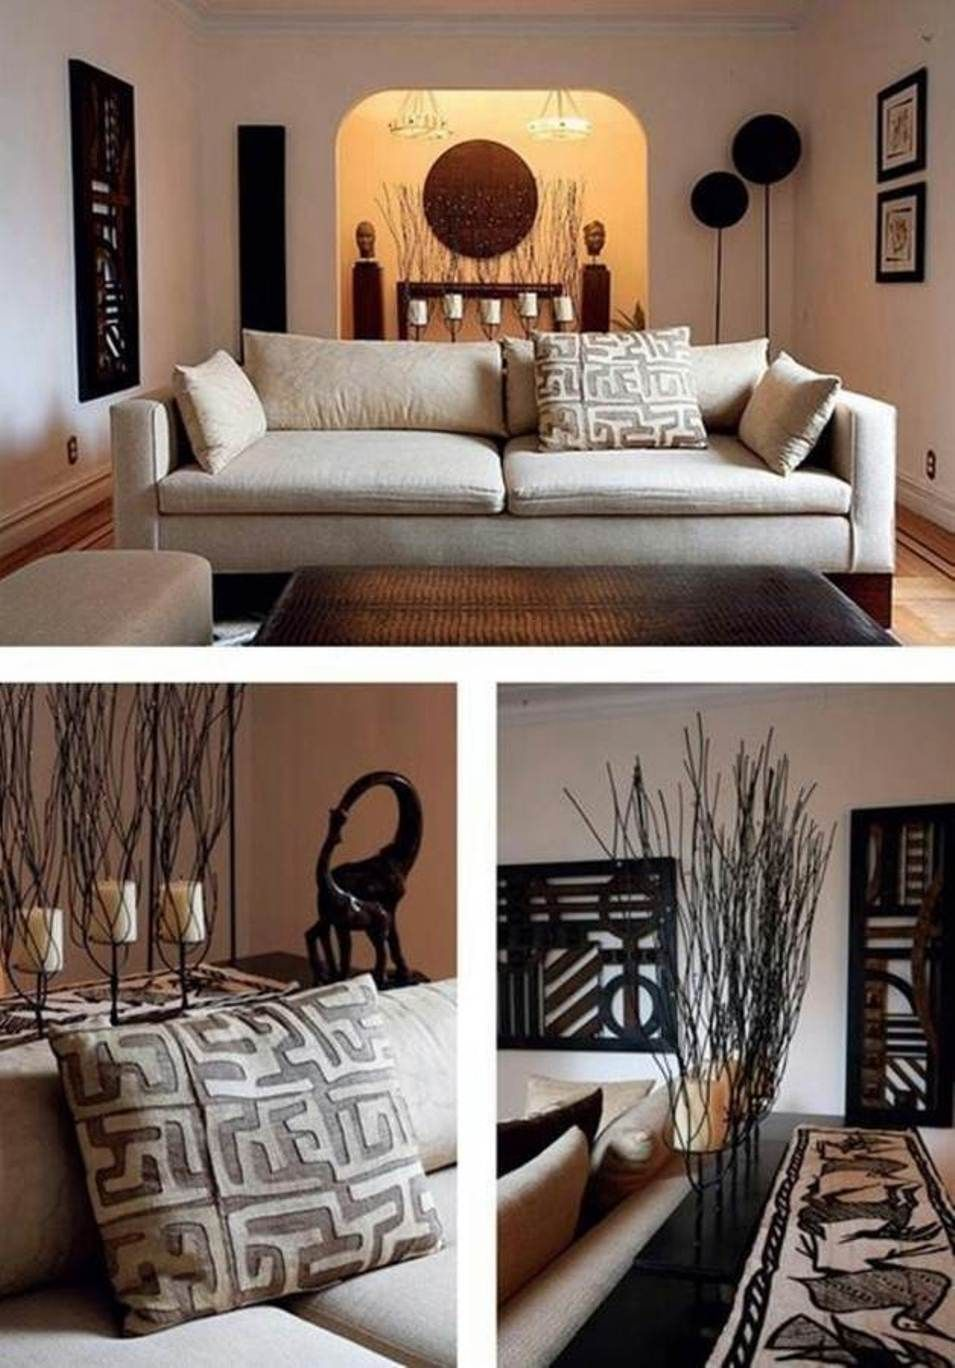 South African Decorating Ideas African Tribal Global Design Influences Pi